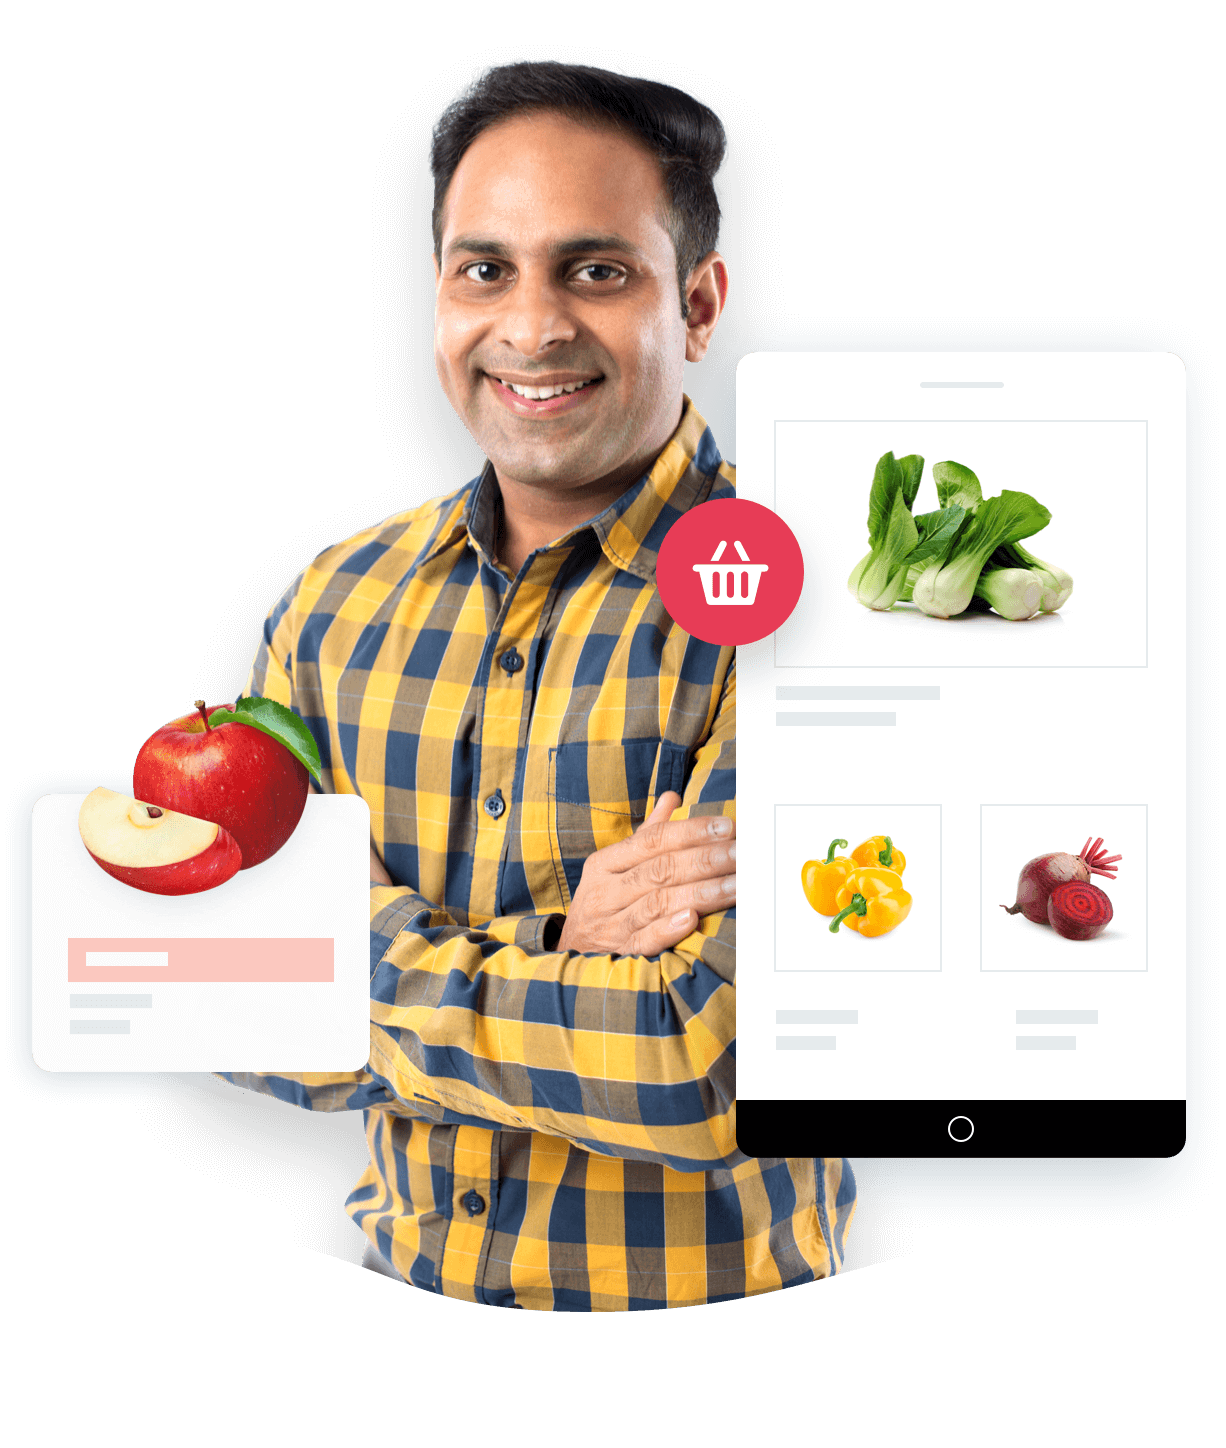 Shopmatic - Expand your business locally or globally by taking it online